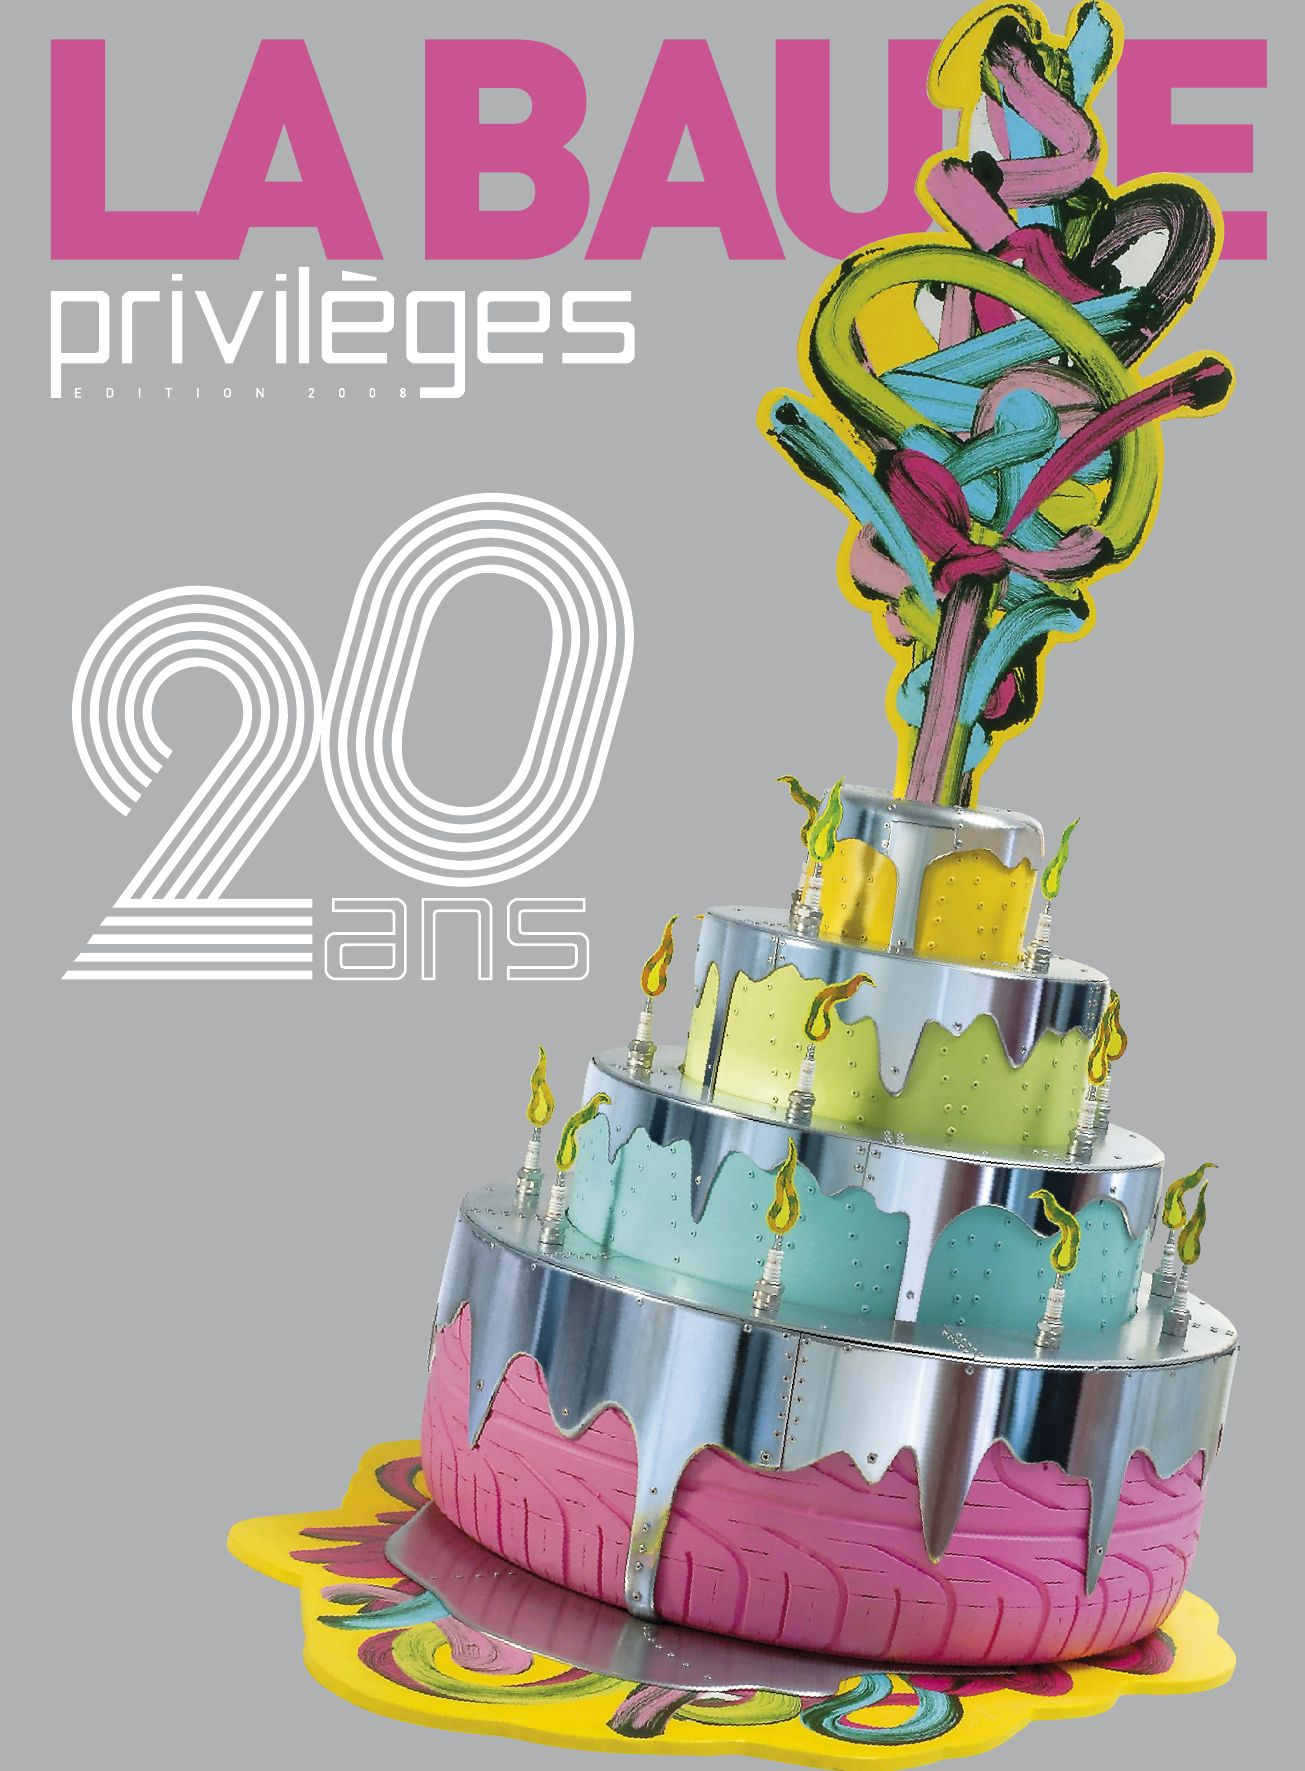 LA BAULE PRIVILEGES 2008 by Les Éditions du Privilège - issuu f2a22e9d8912